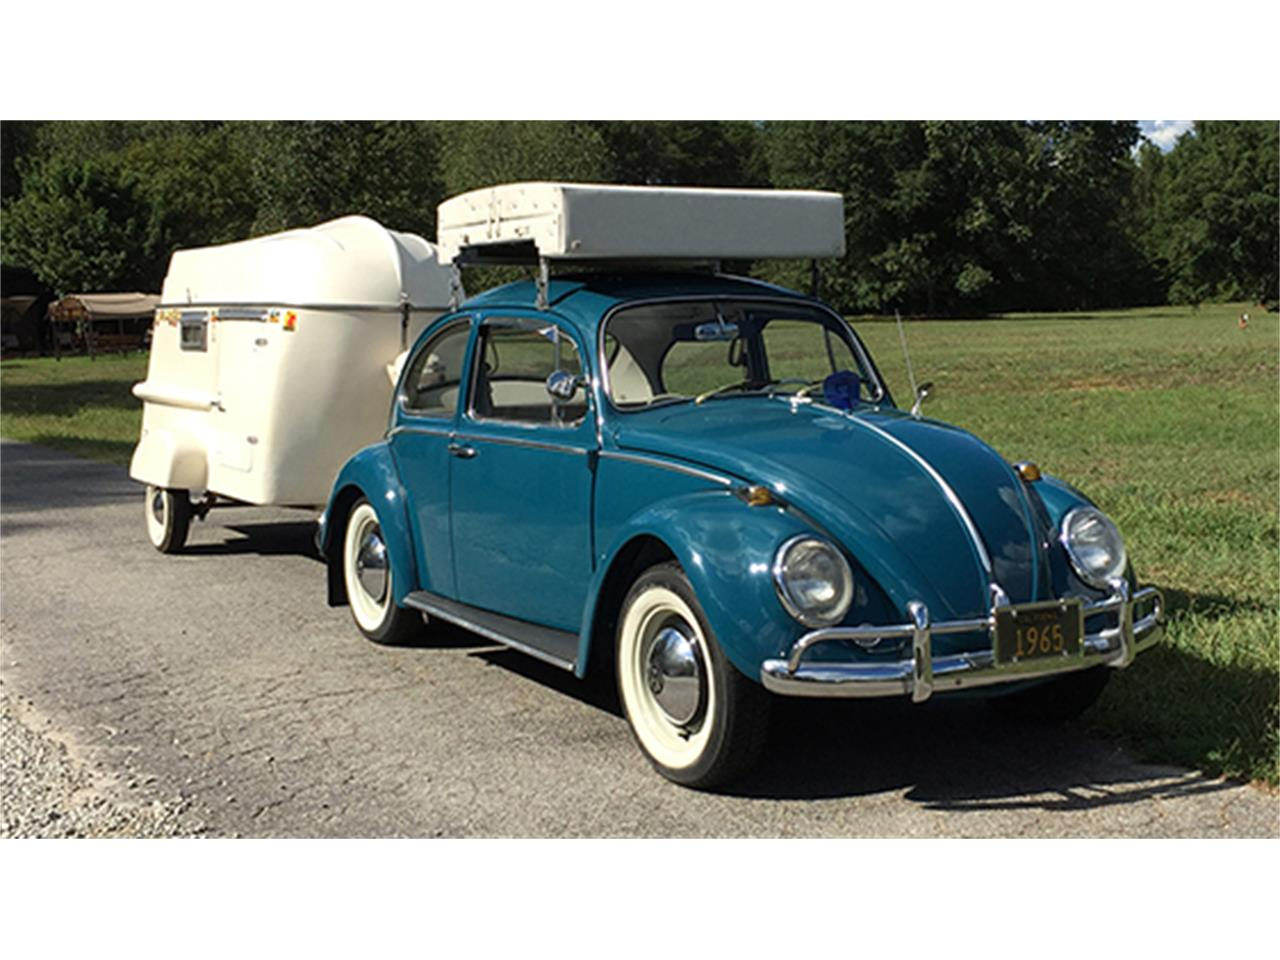 Large Picture Of 65 Beetle Coupe With Camping Accessories Jejp